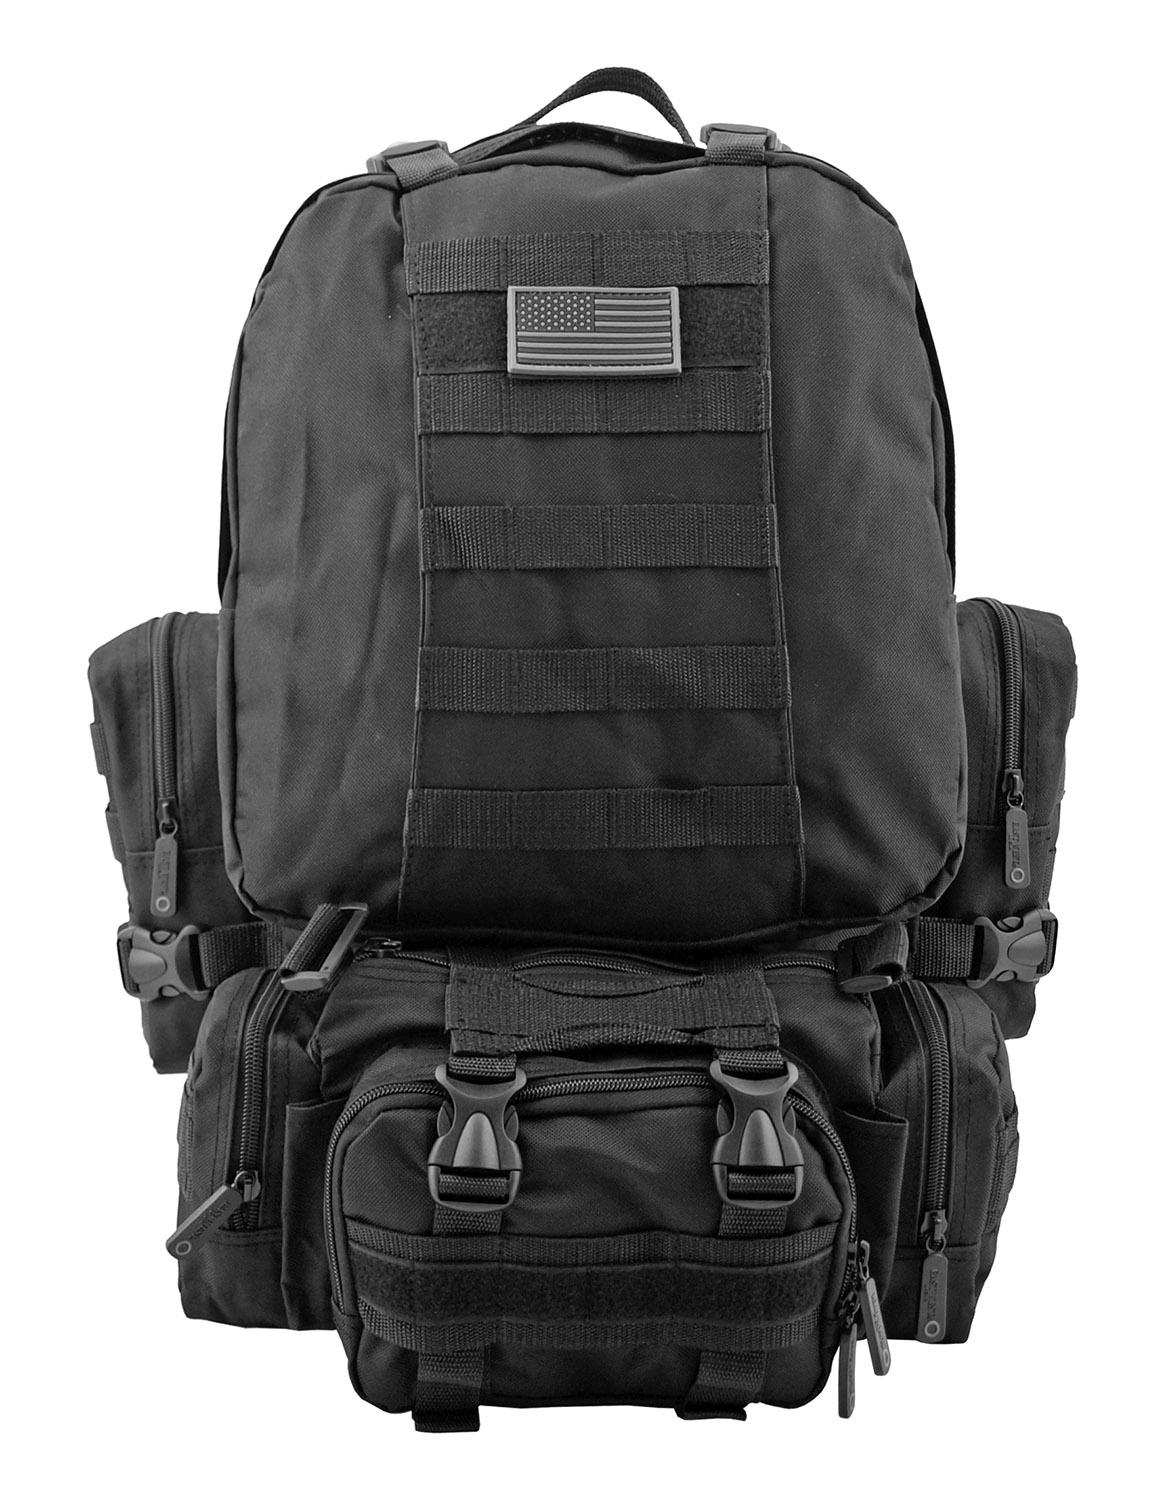 Large Tactical Assault Rucksack Backpack - Black